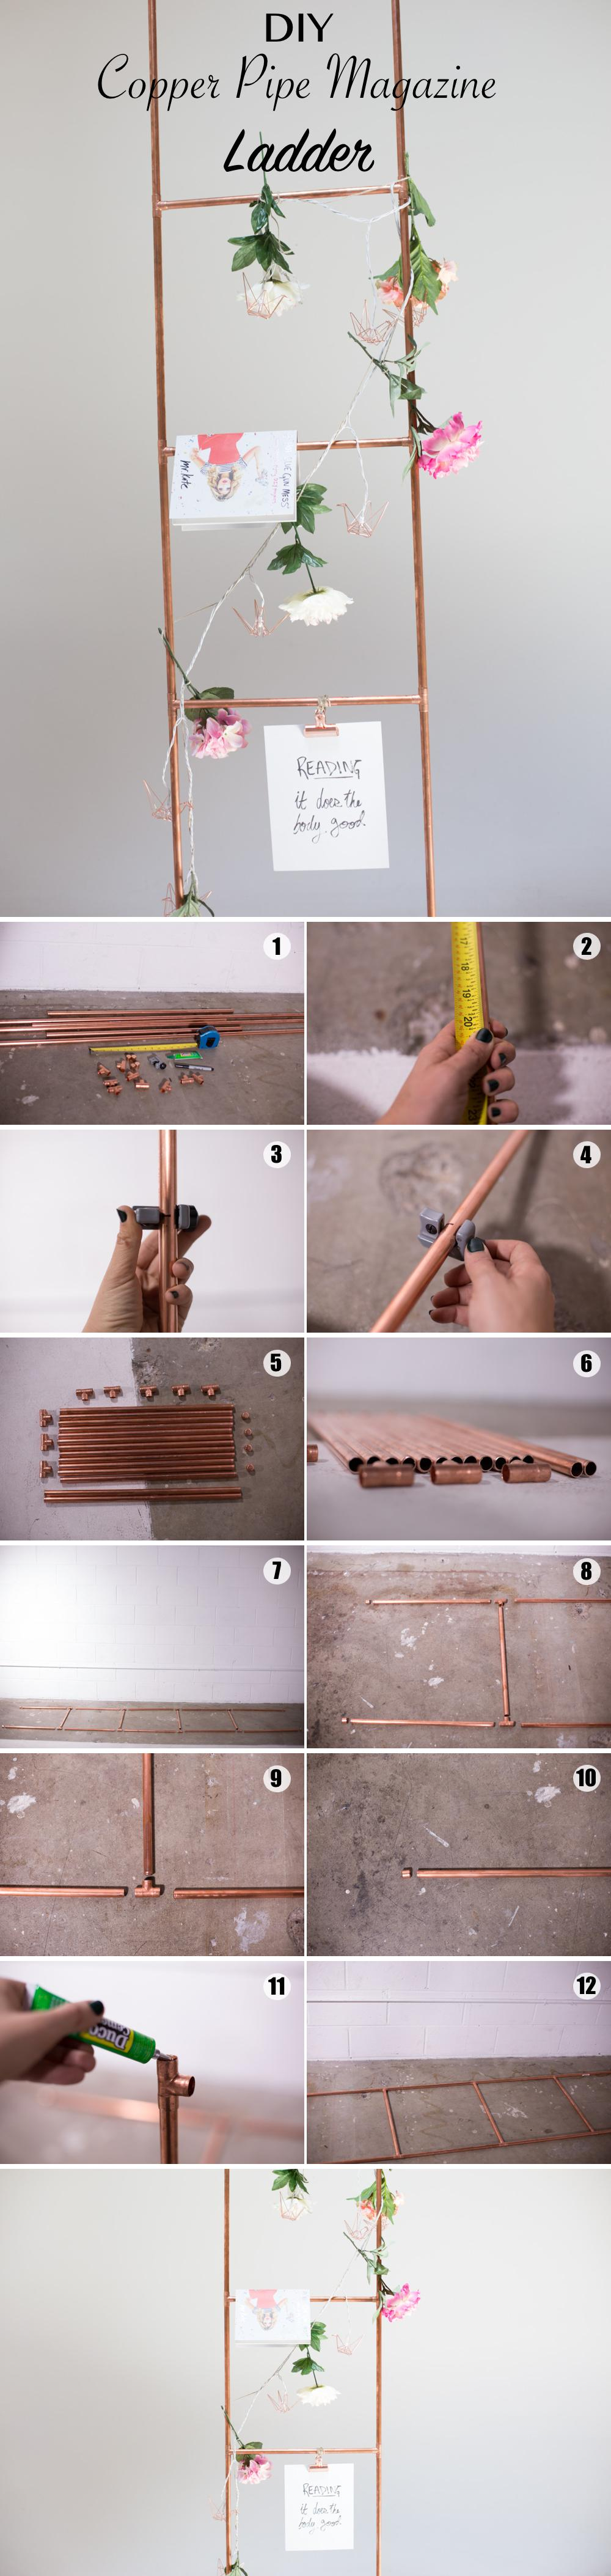 DIY Copper Pipe Magazine Ladder